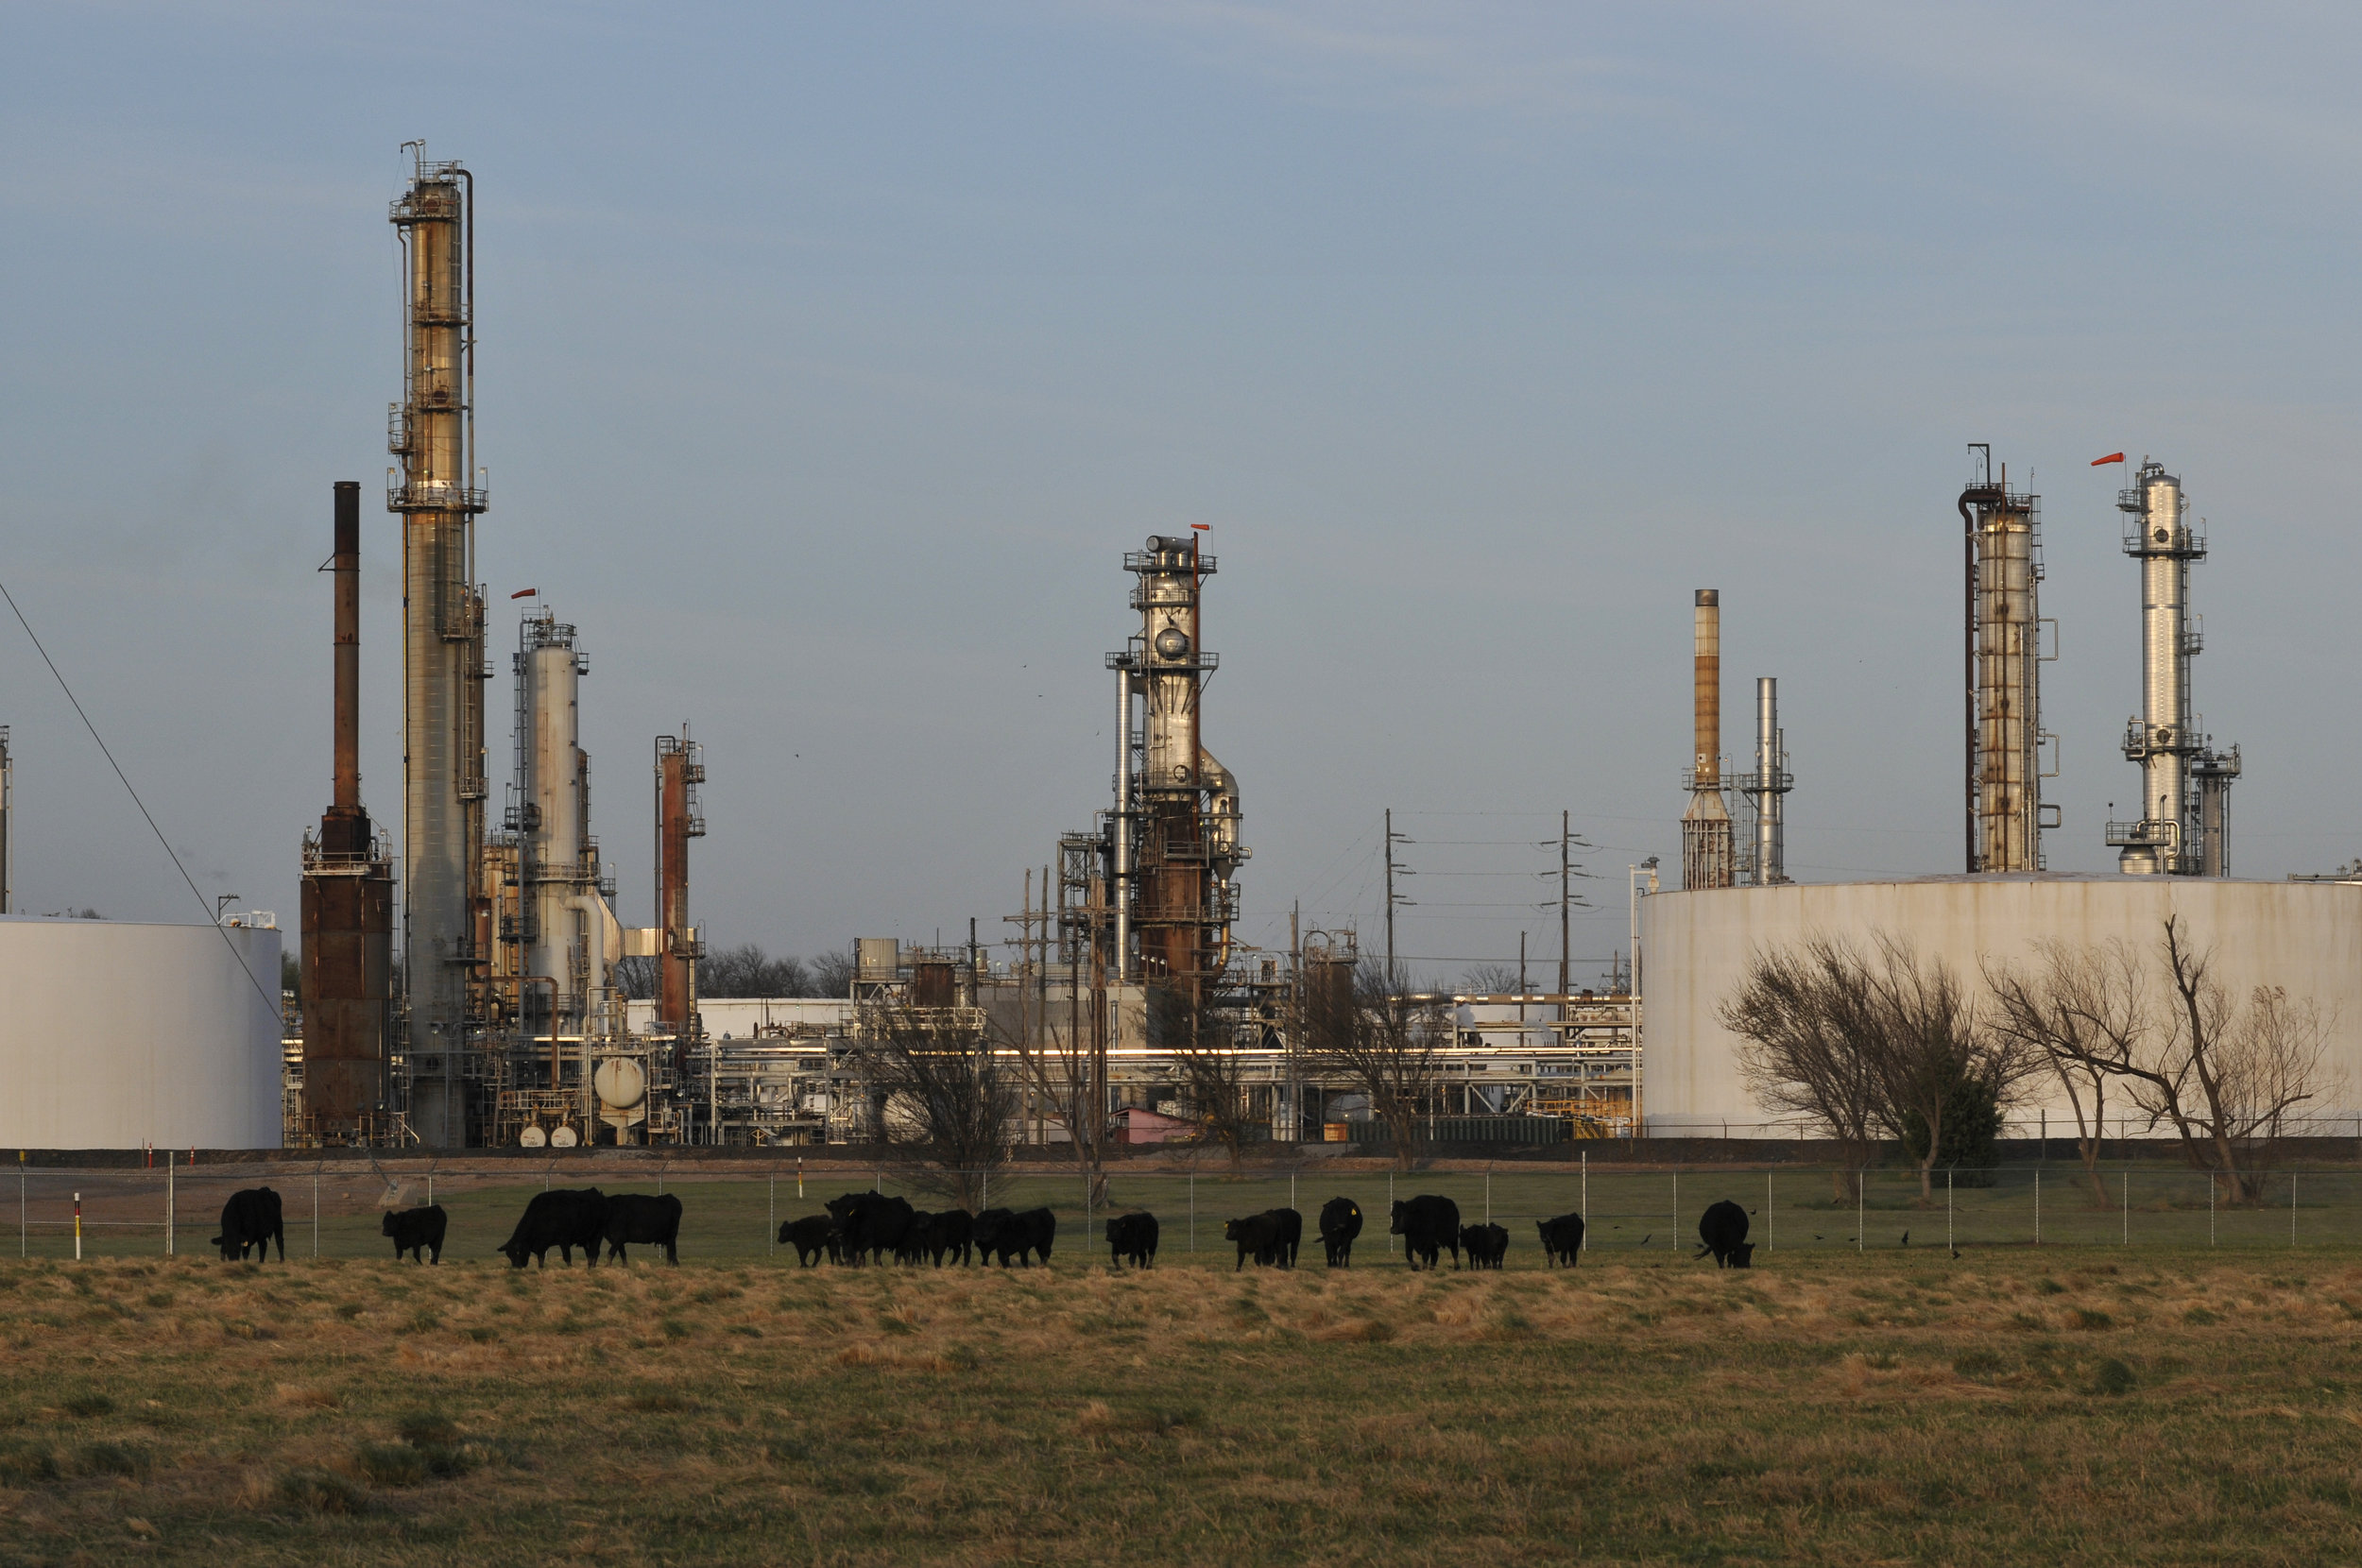 Cattle graze in front of the Wynnewood refinery in Wynnewood, Oklahoma. Nick Oxford for The New York Times